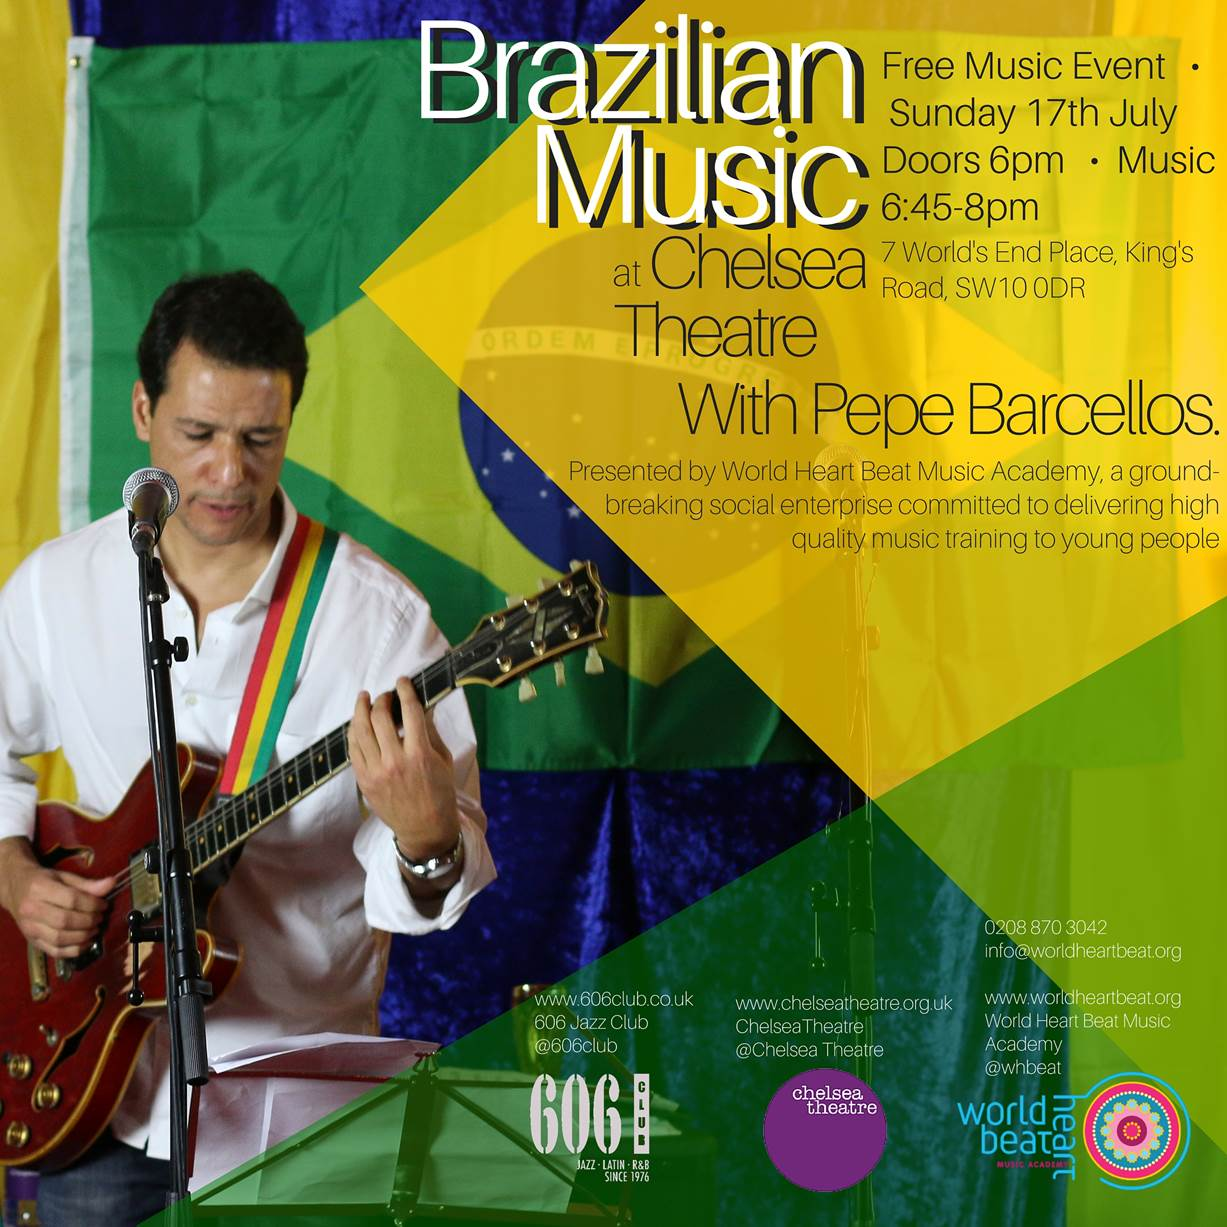 BrazilianMusic@Chelsea